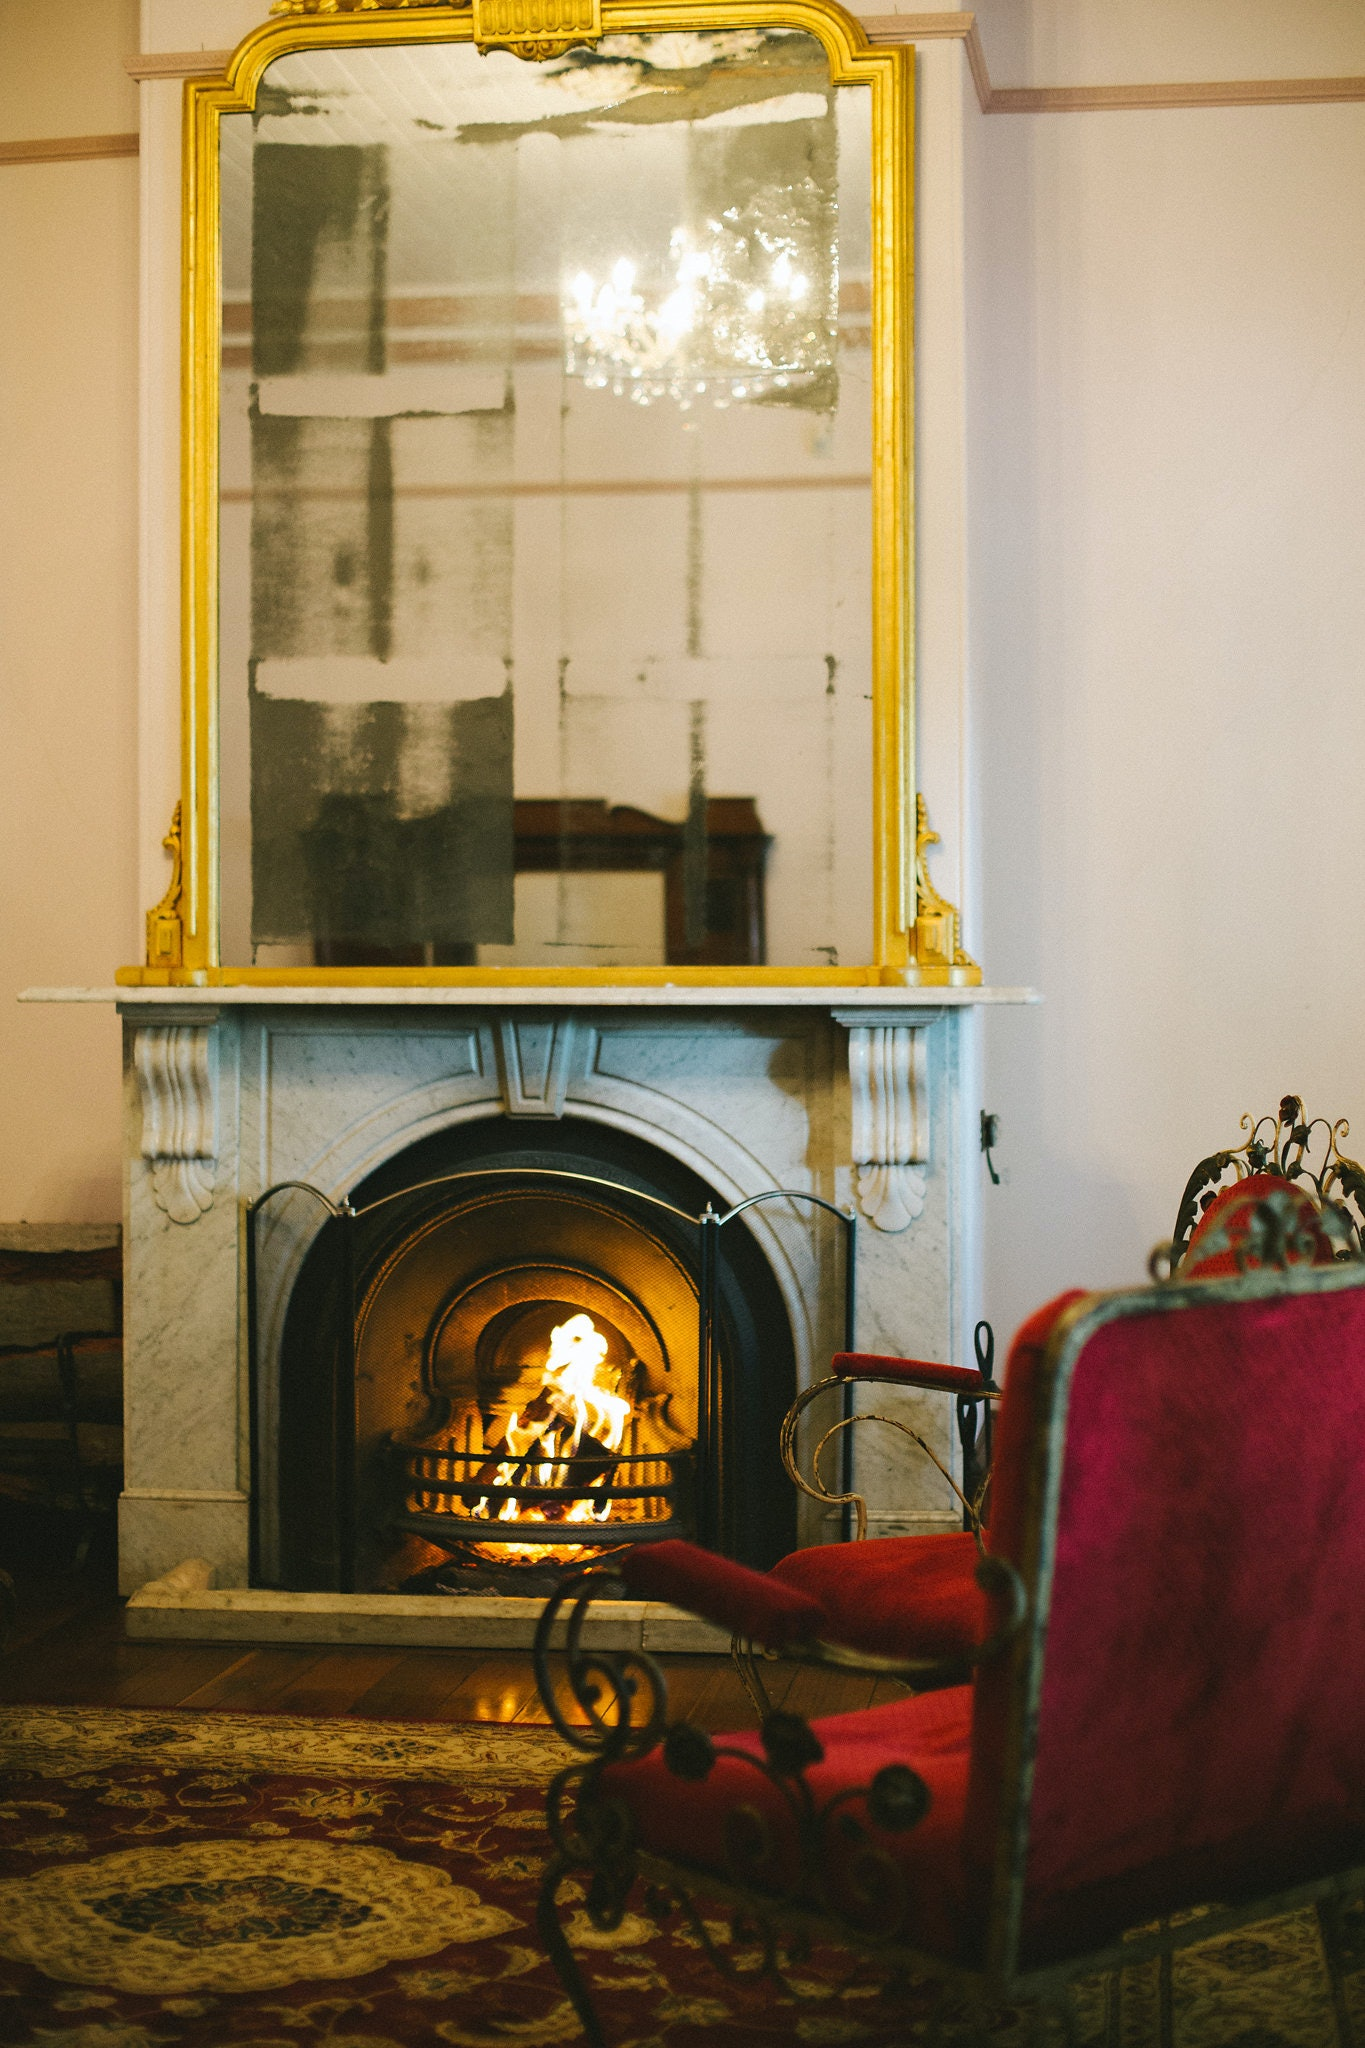 Marble fireplace with fire in historic homestead